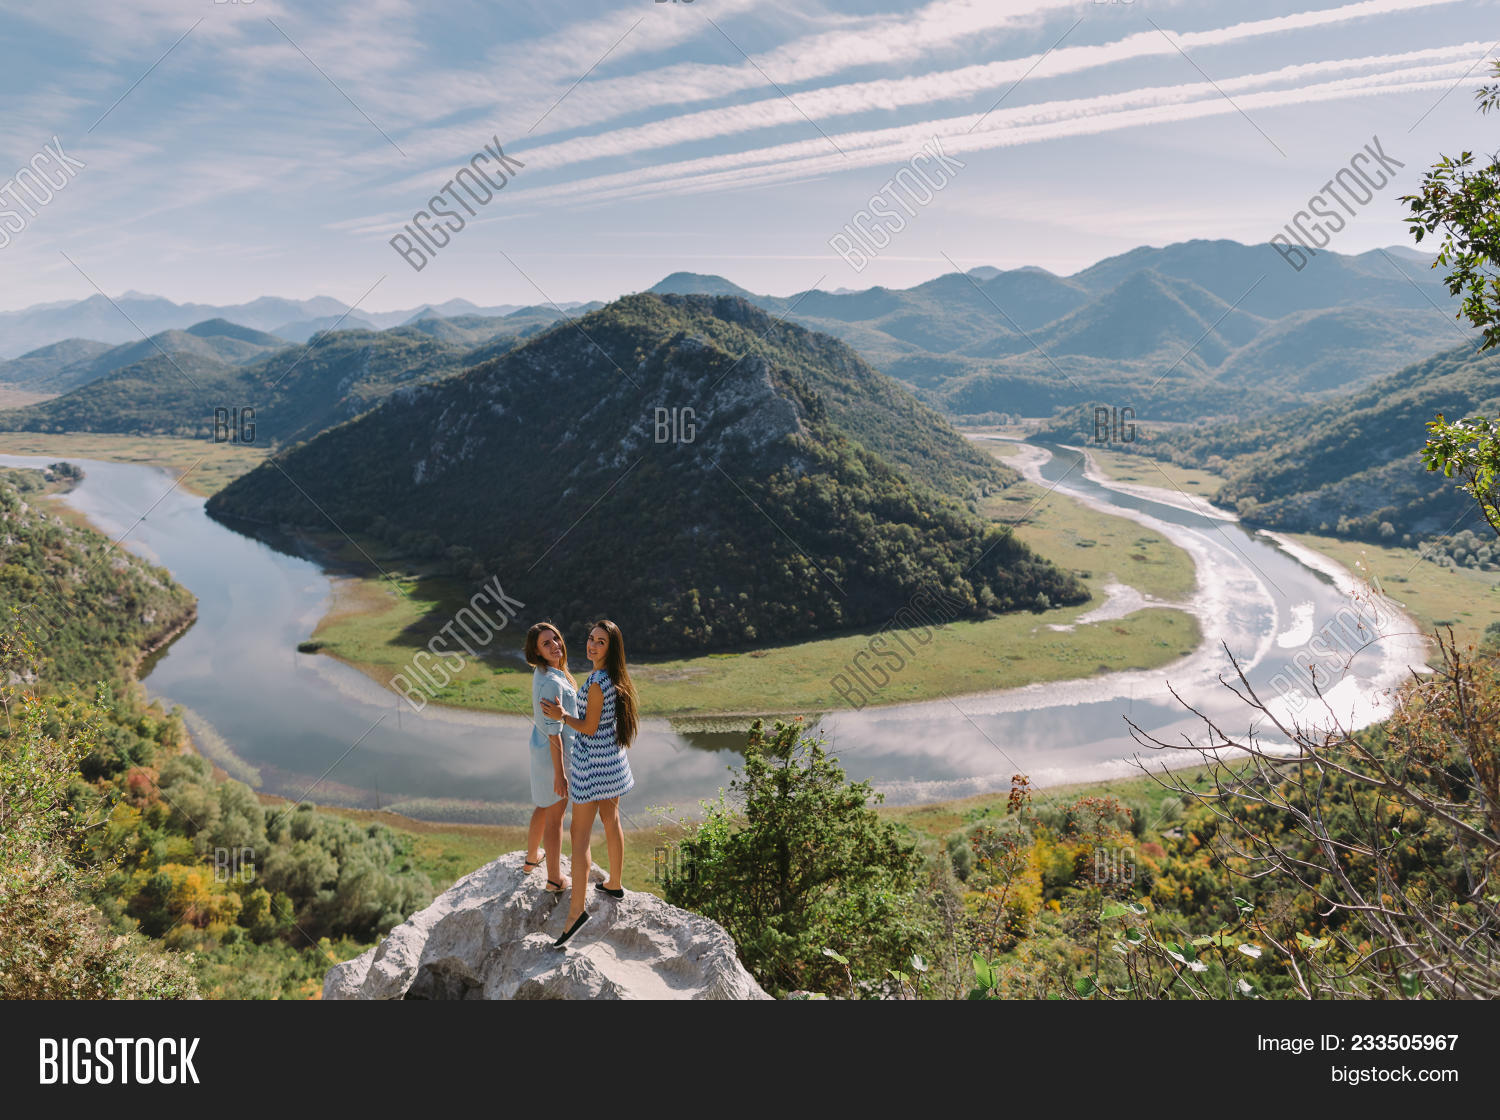 Two Girls Travelling In Mountains At Sunset With Beautiful View.  Picturesque Landscape Background. M 3ec5b1cbc1cf7